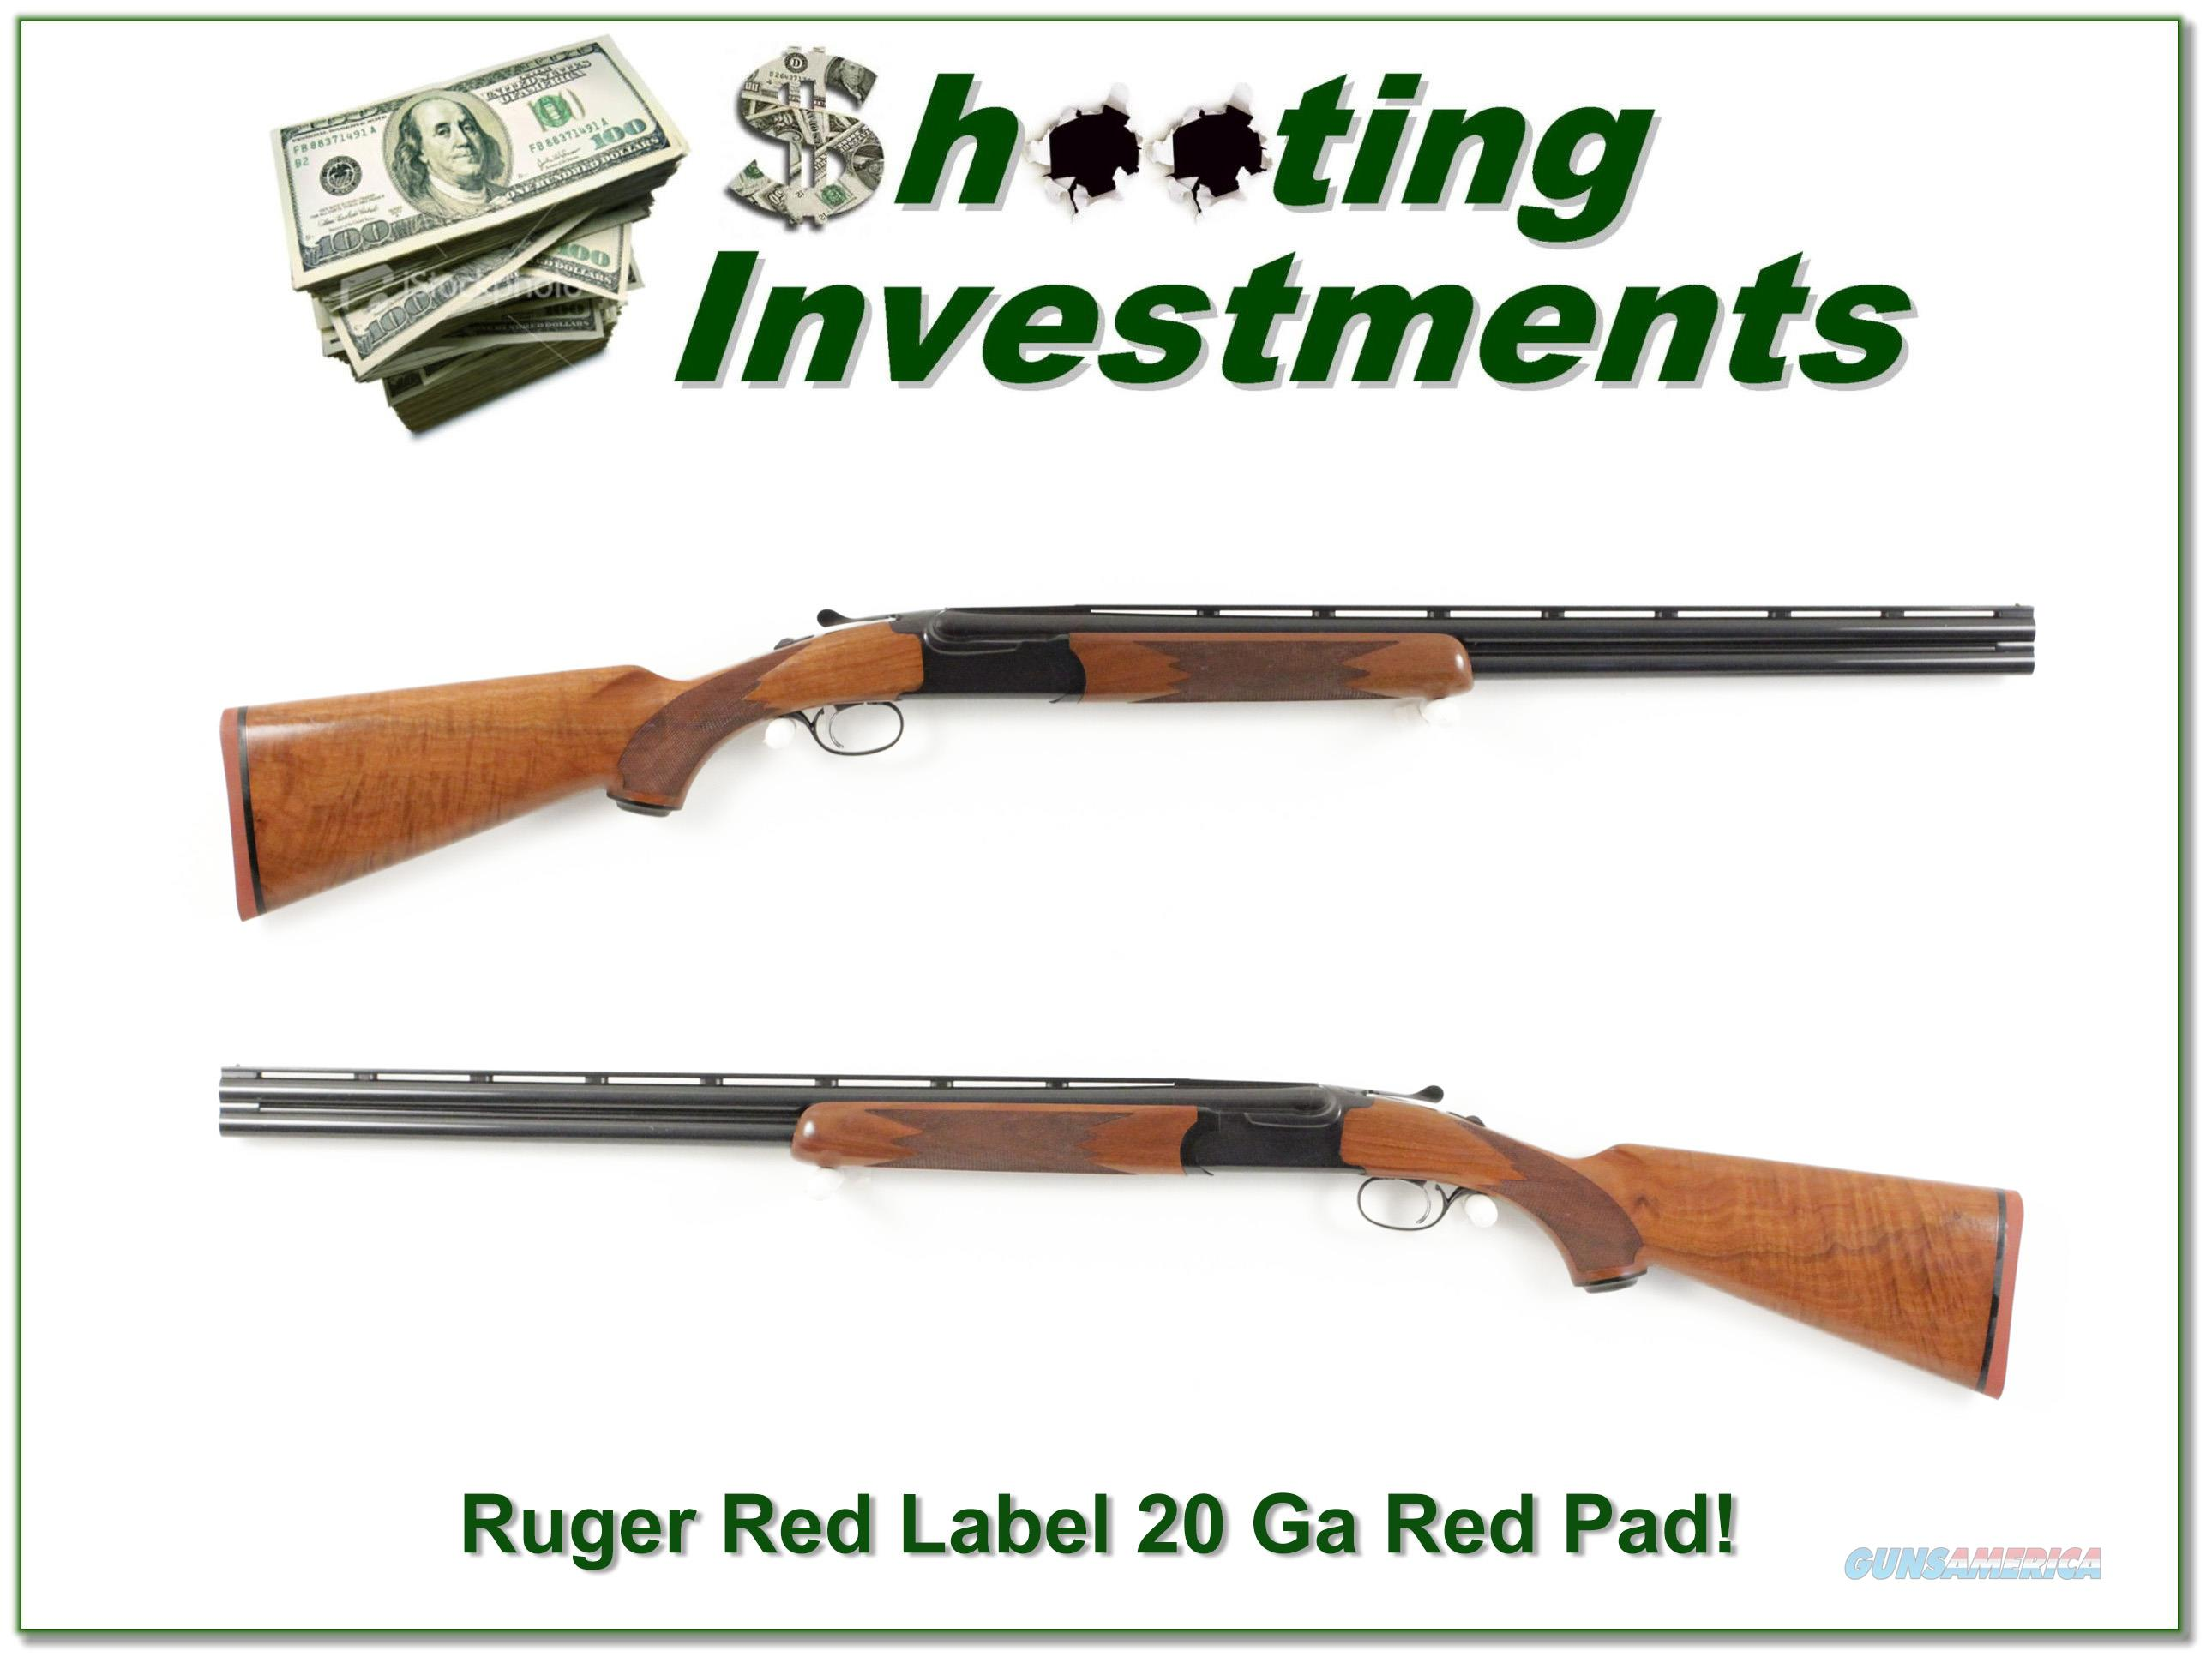 Ruger Red Label 20 Gauge XX Wood mint 26in IC and MOD  Guns > Shotguns > Ruger Shotguns > Hunting